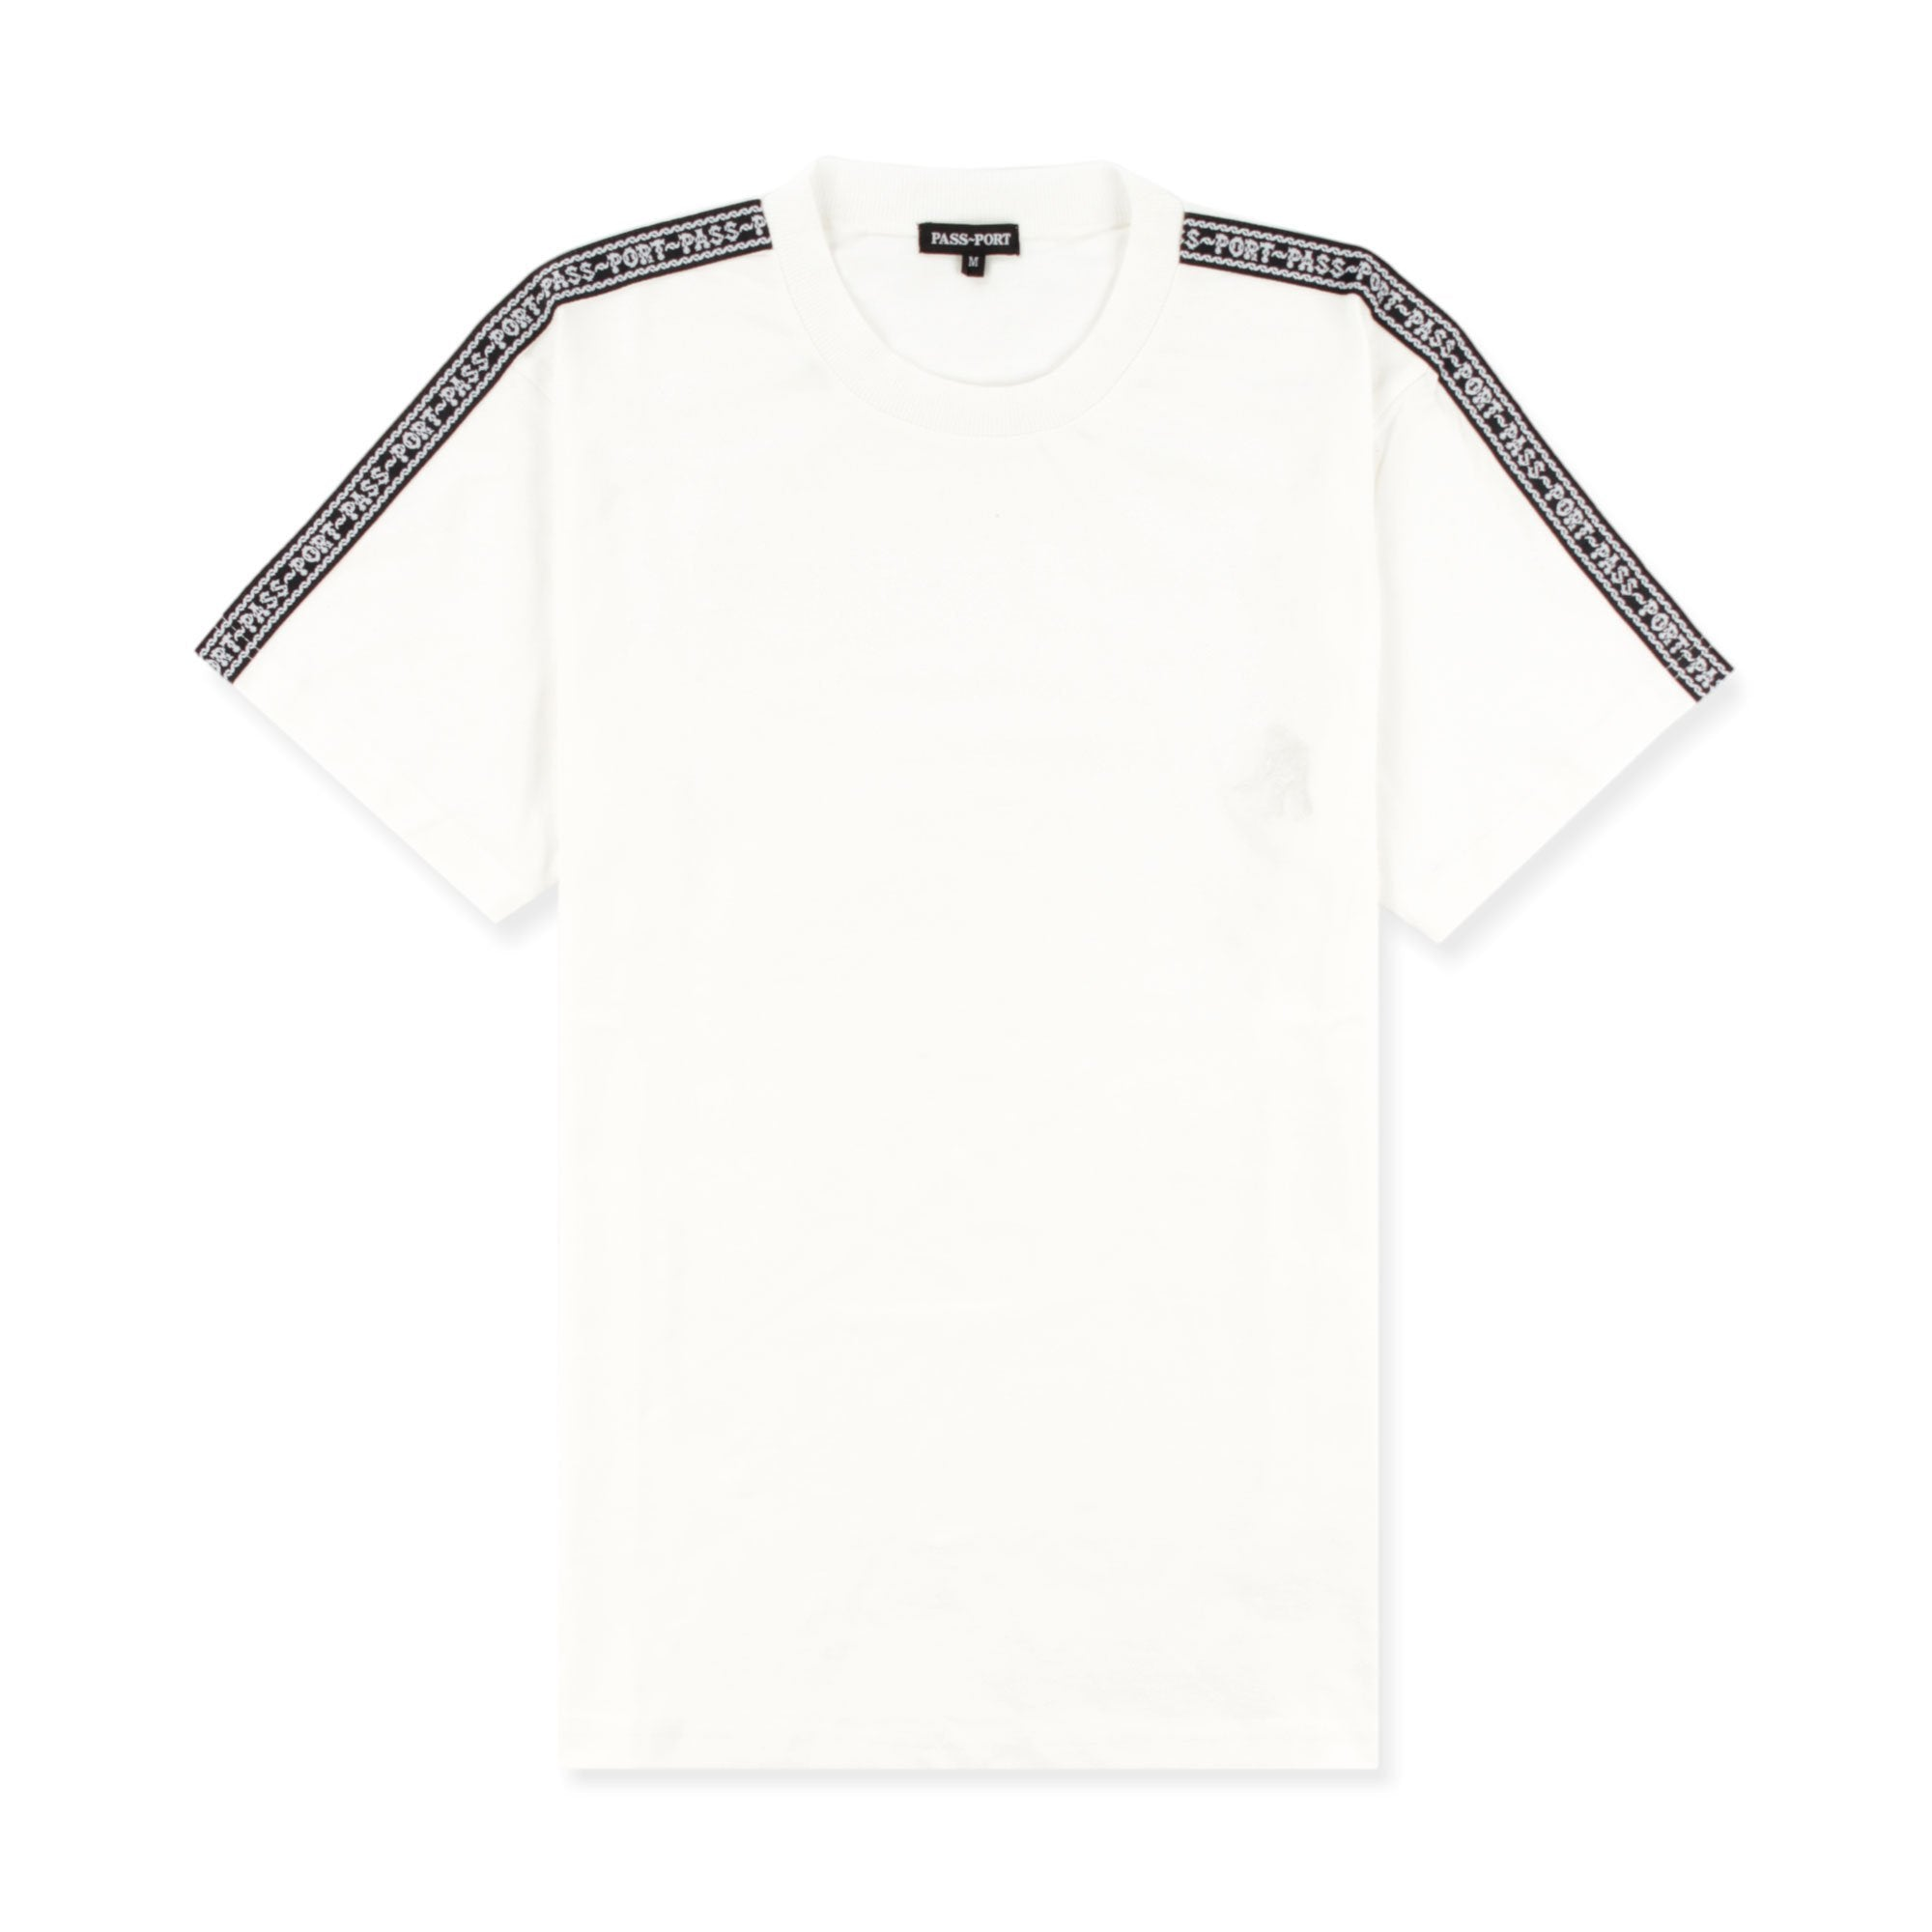 Passport Barbs Ribbon Tee Product Photo #1